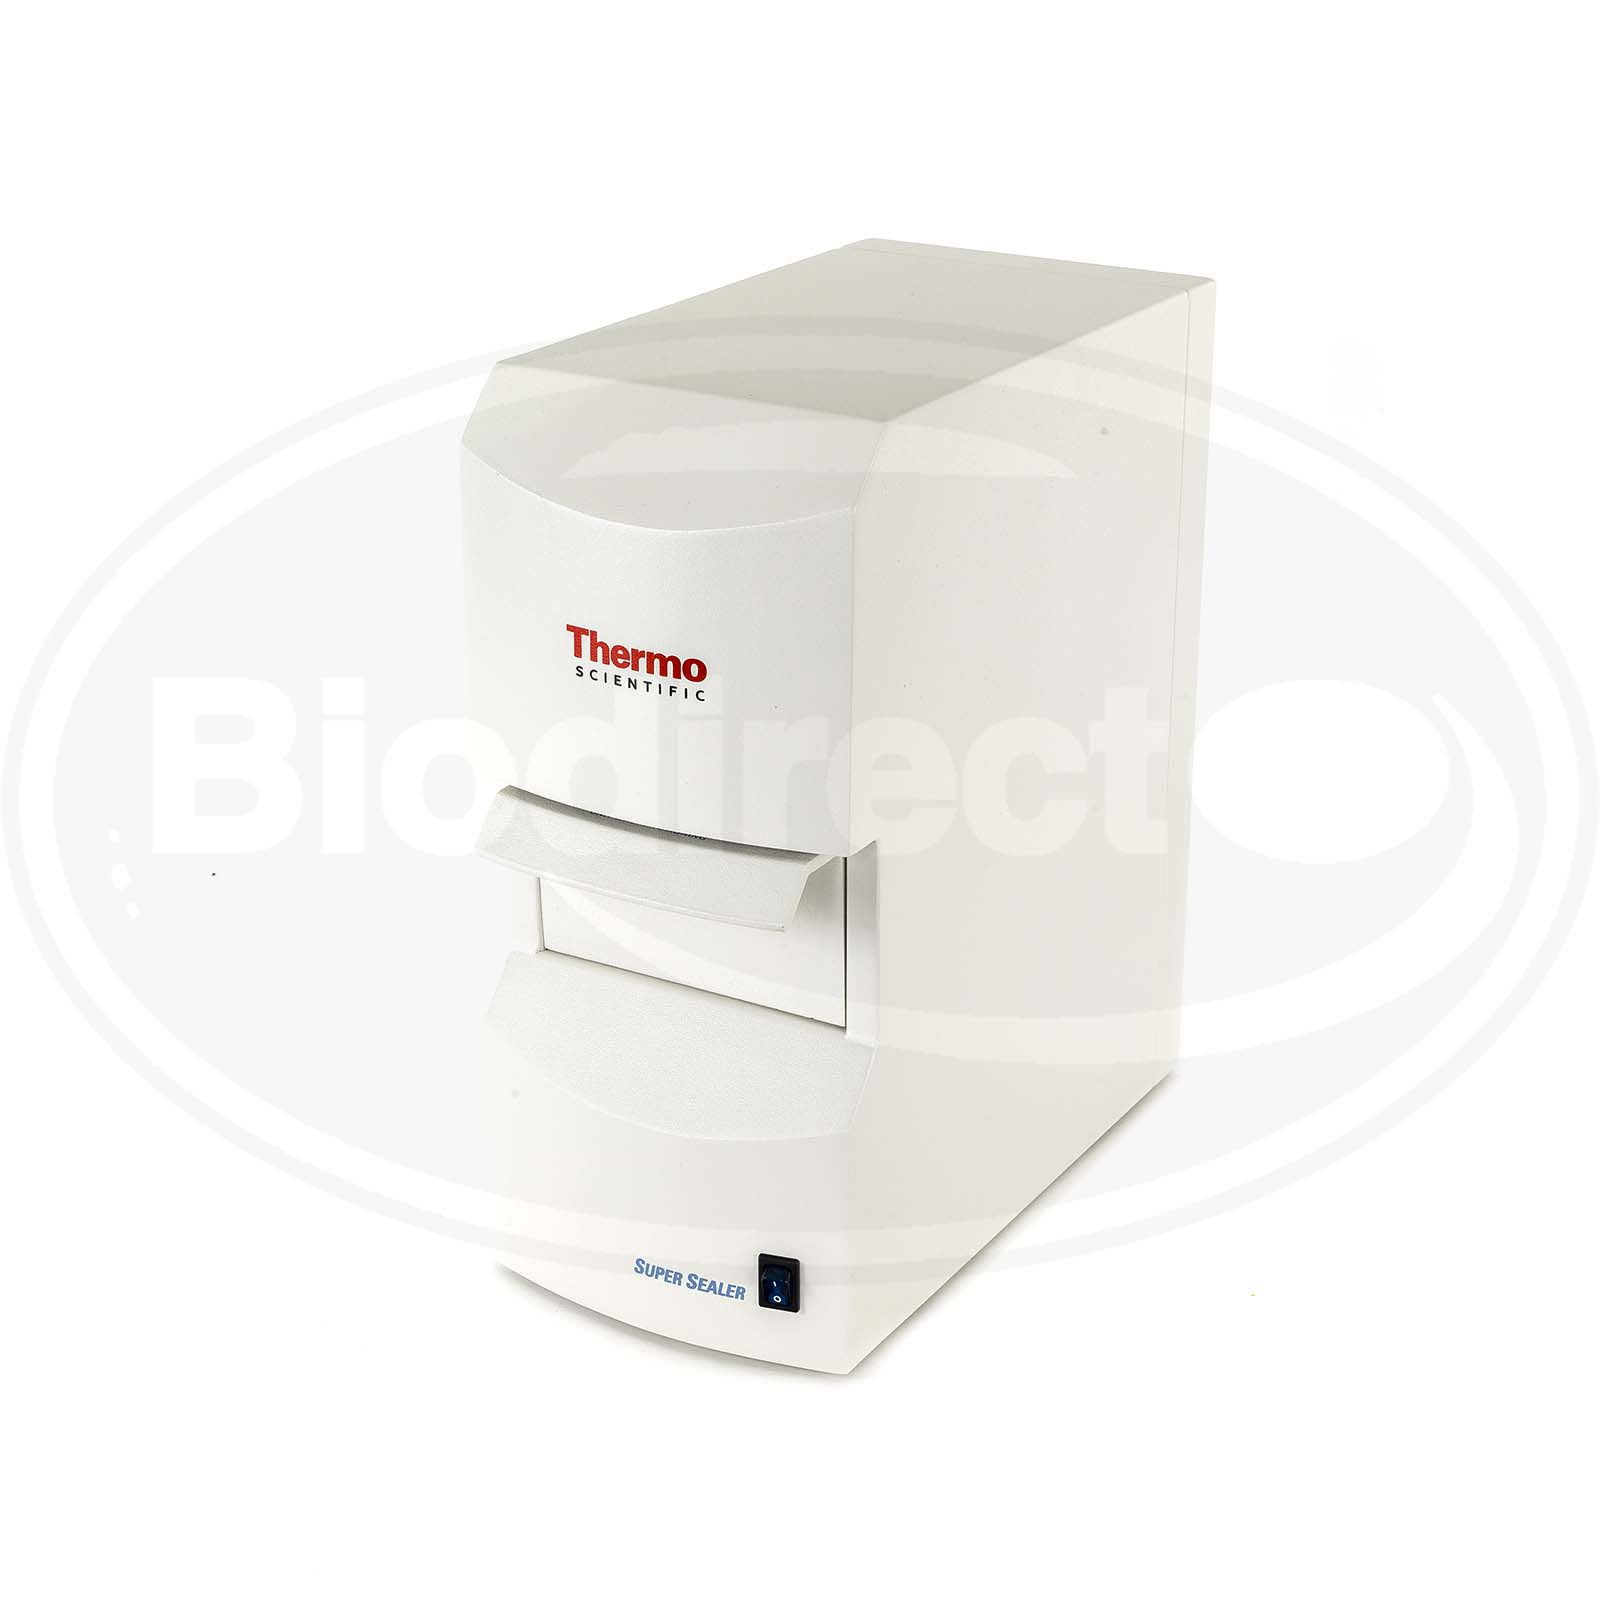 Thermo Matrix Matrix Super Sealer Microplate Sealers: Cap Mat